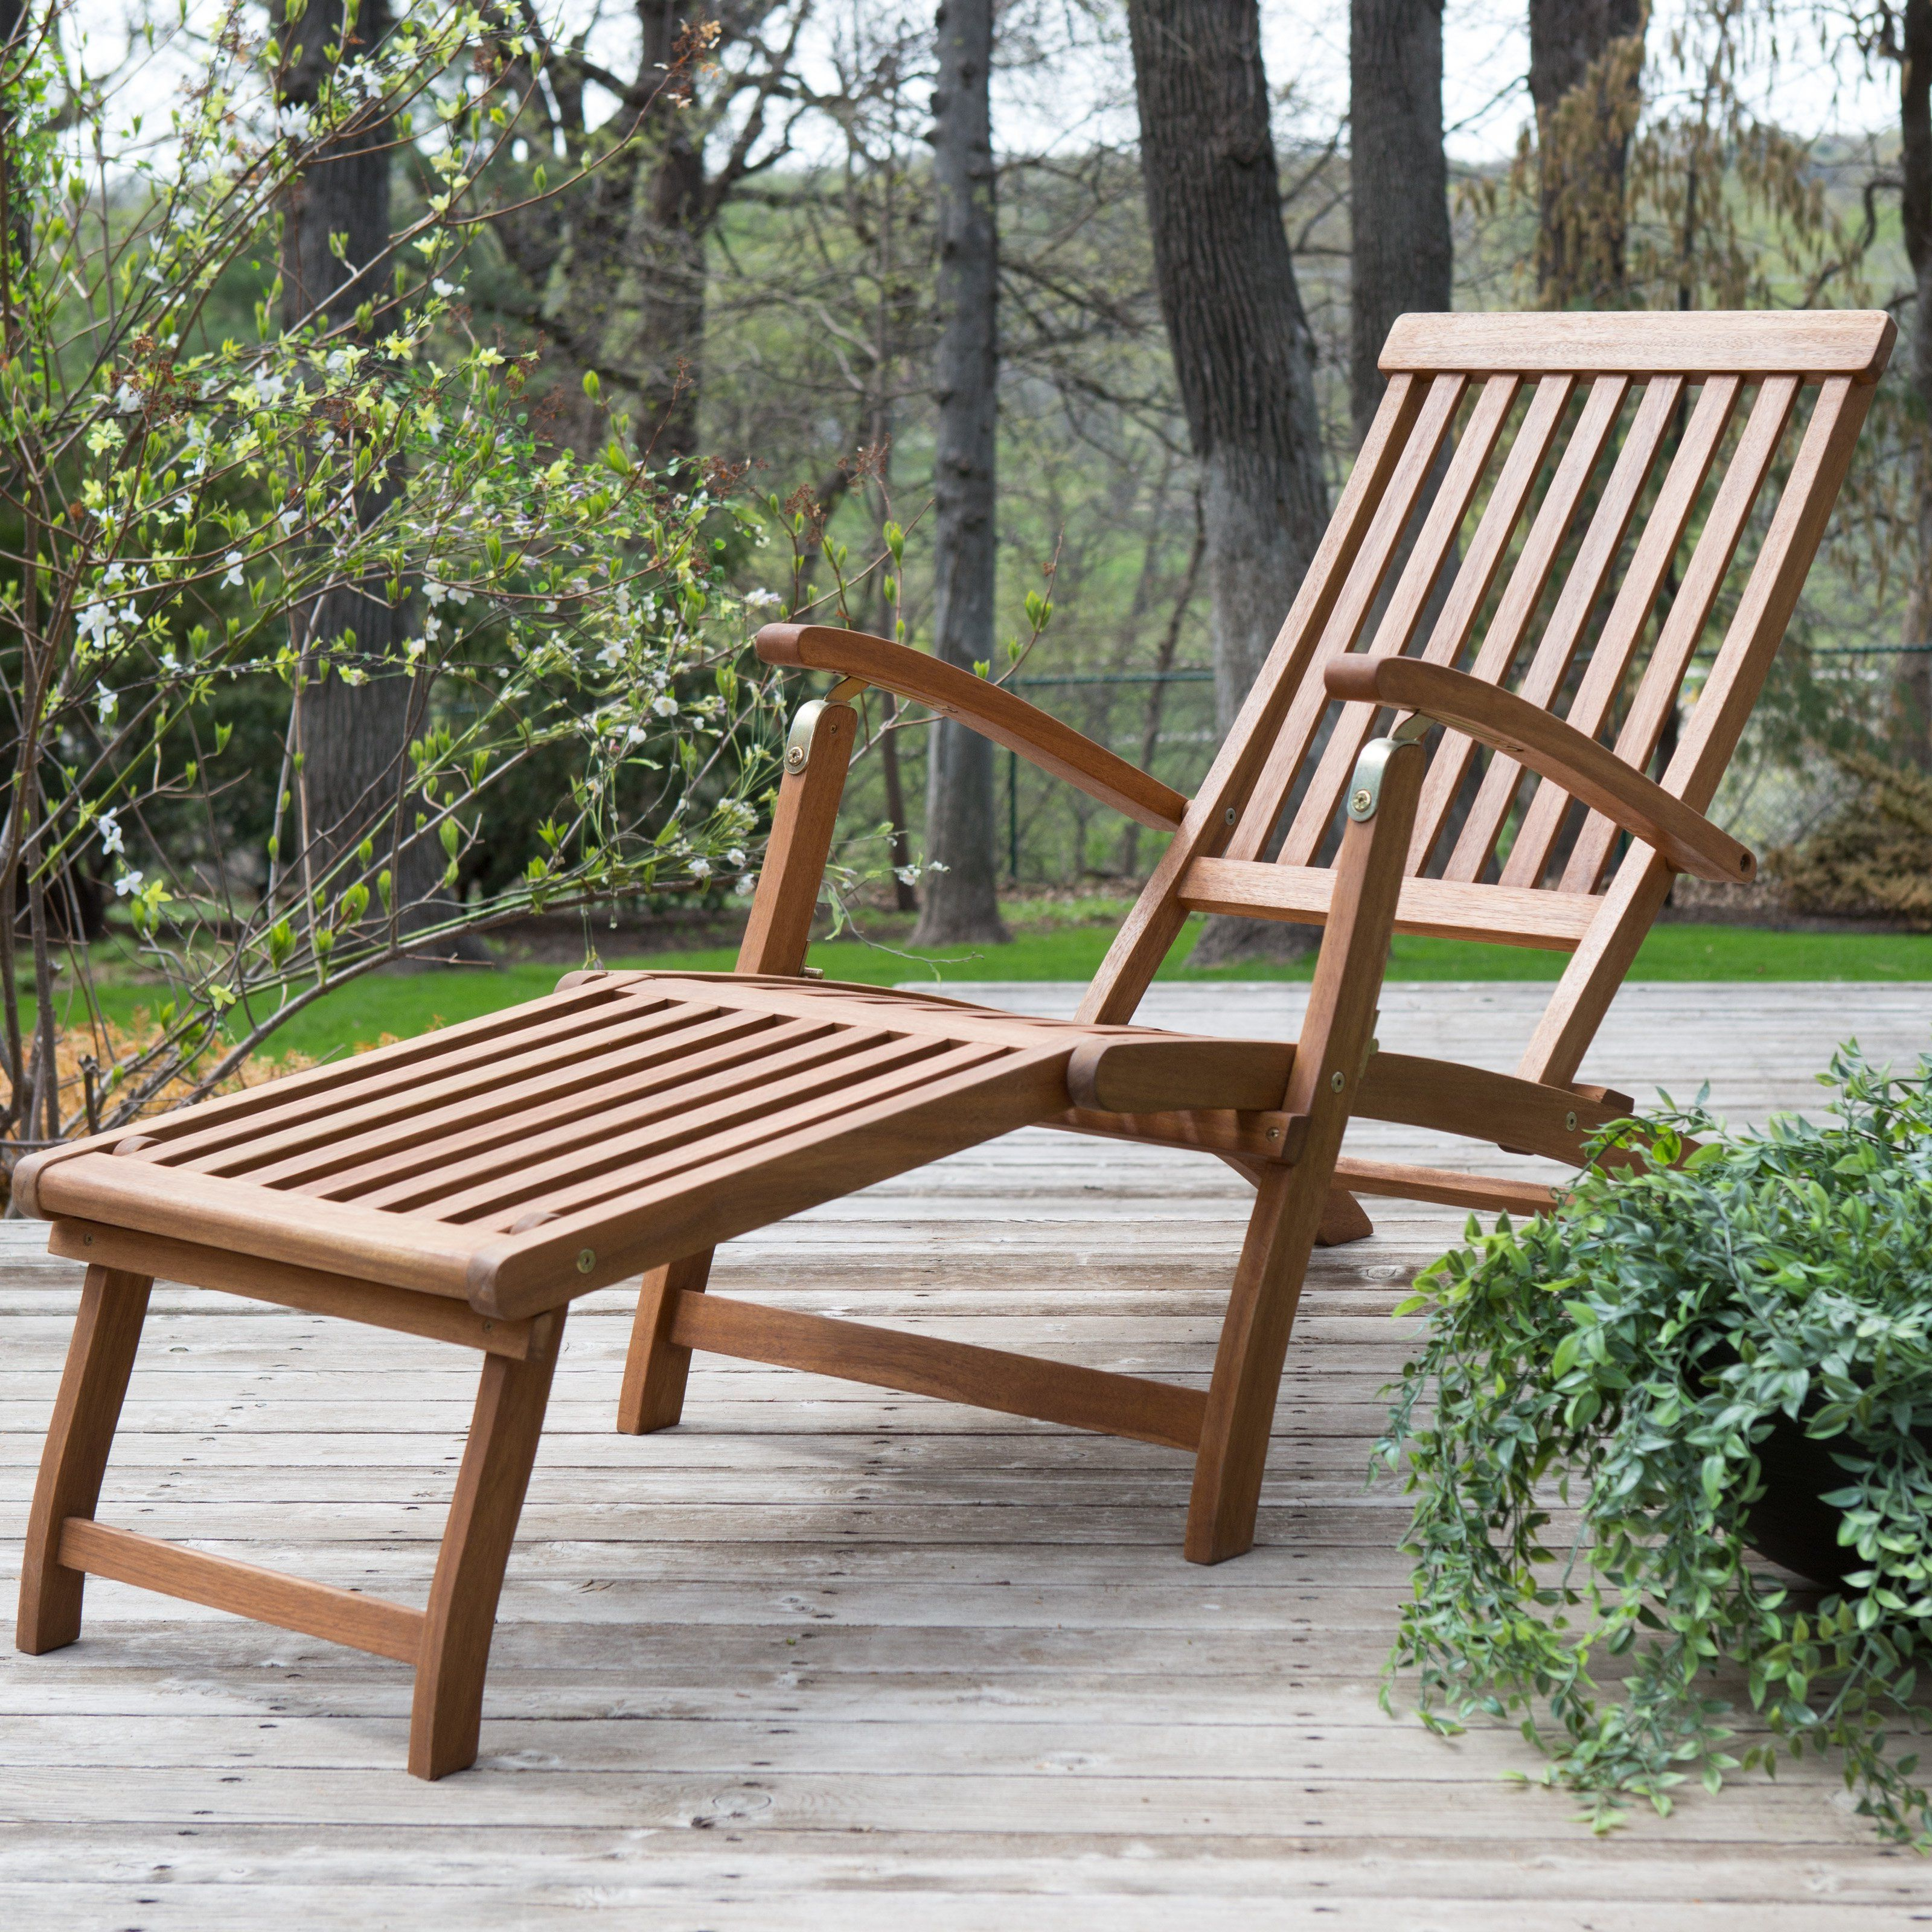 Well Known Outdoor Rustic Acacia Wood Chaise Lounges With Wicker Seat In $130 Coral Coast Dorado Acacia Steamer Deck Lounge Chair (View 10 of 25)